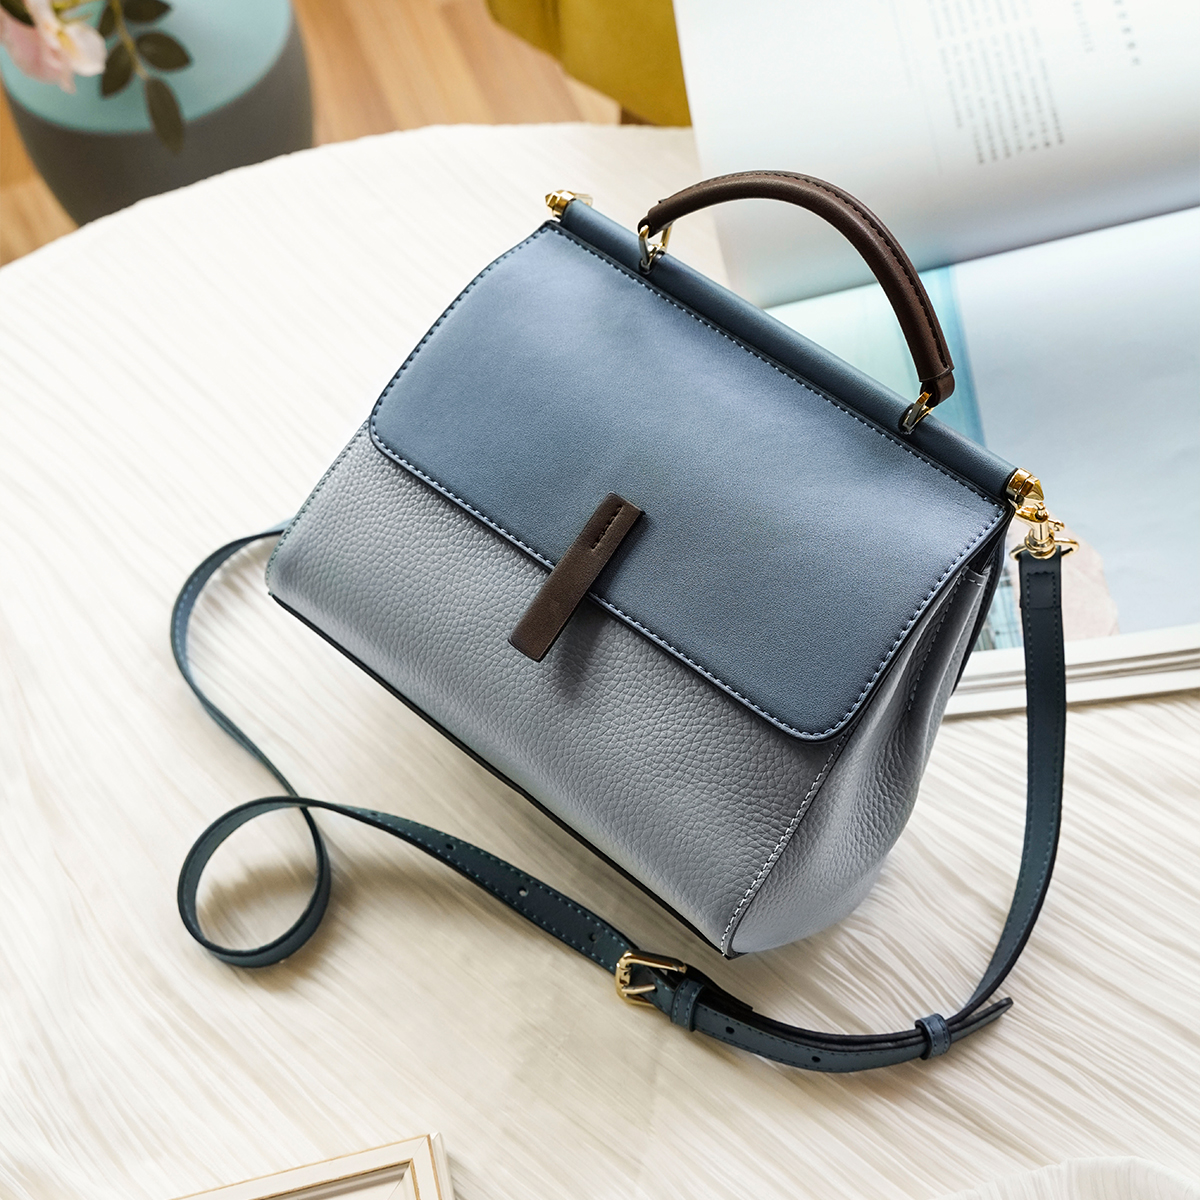 FOXER Lady's Crossbody Bags Genuine Lether Handbag Fall Winter Bag Large Capacity Office Women Tote Commuter Style Shoulder Bag Shoulder Bags  - AliExpress